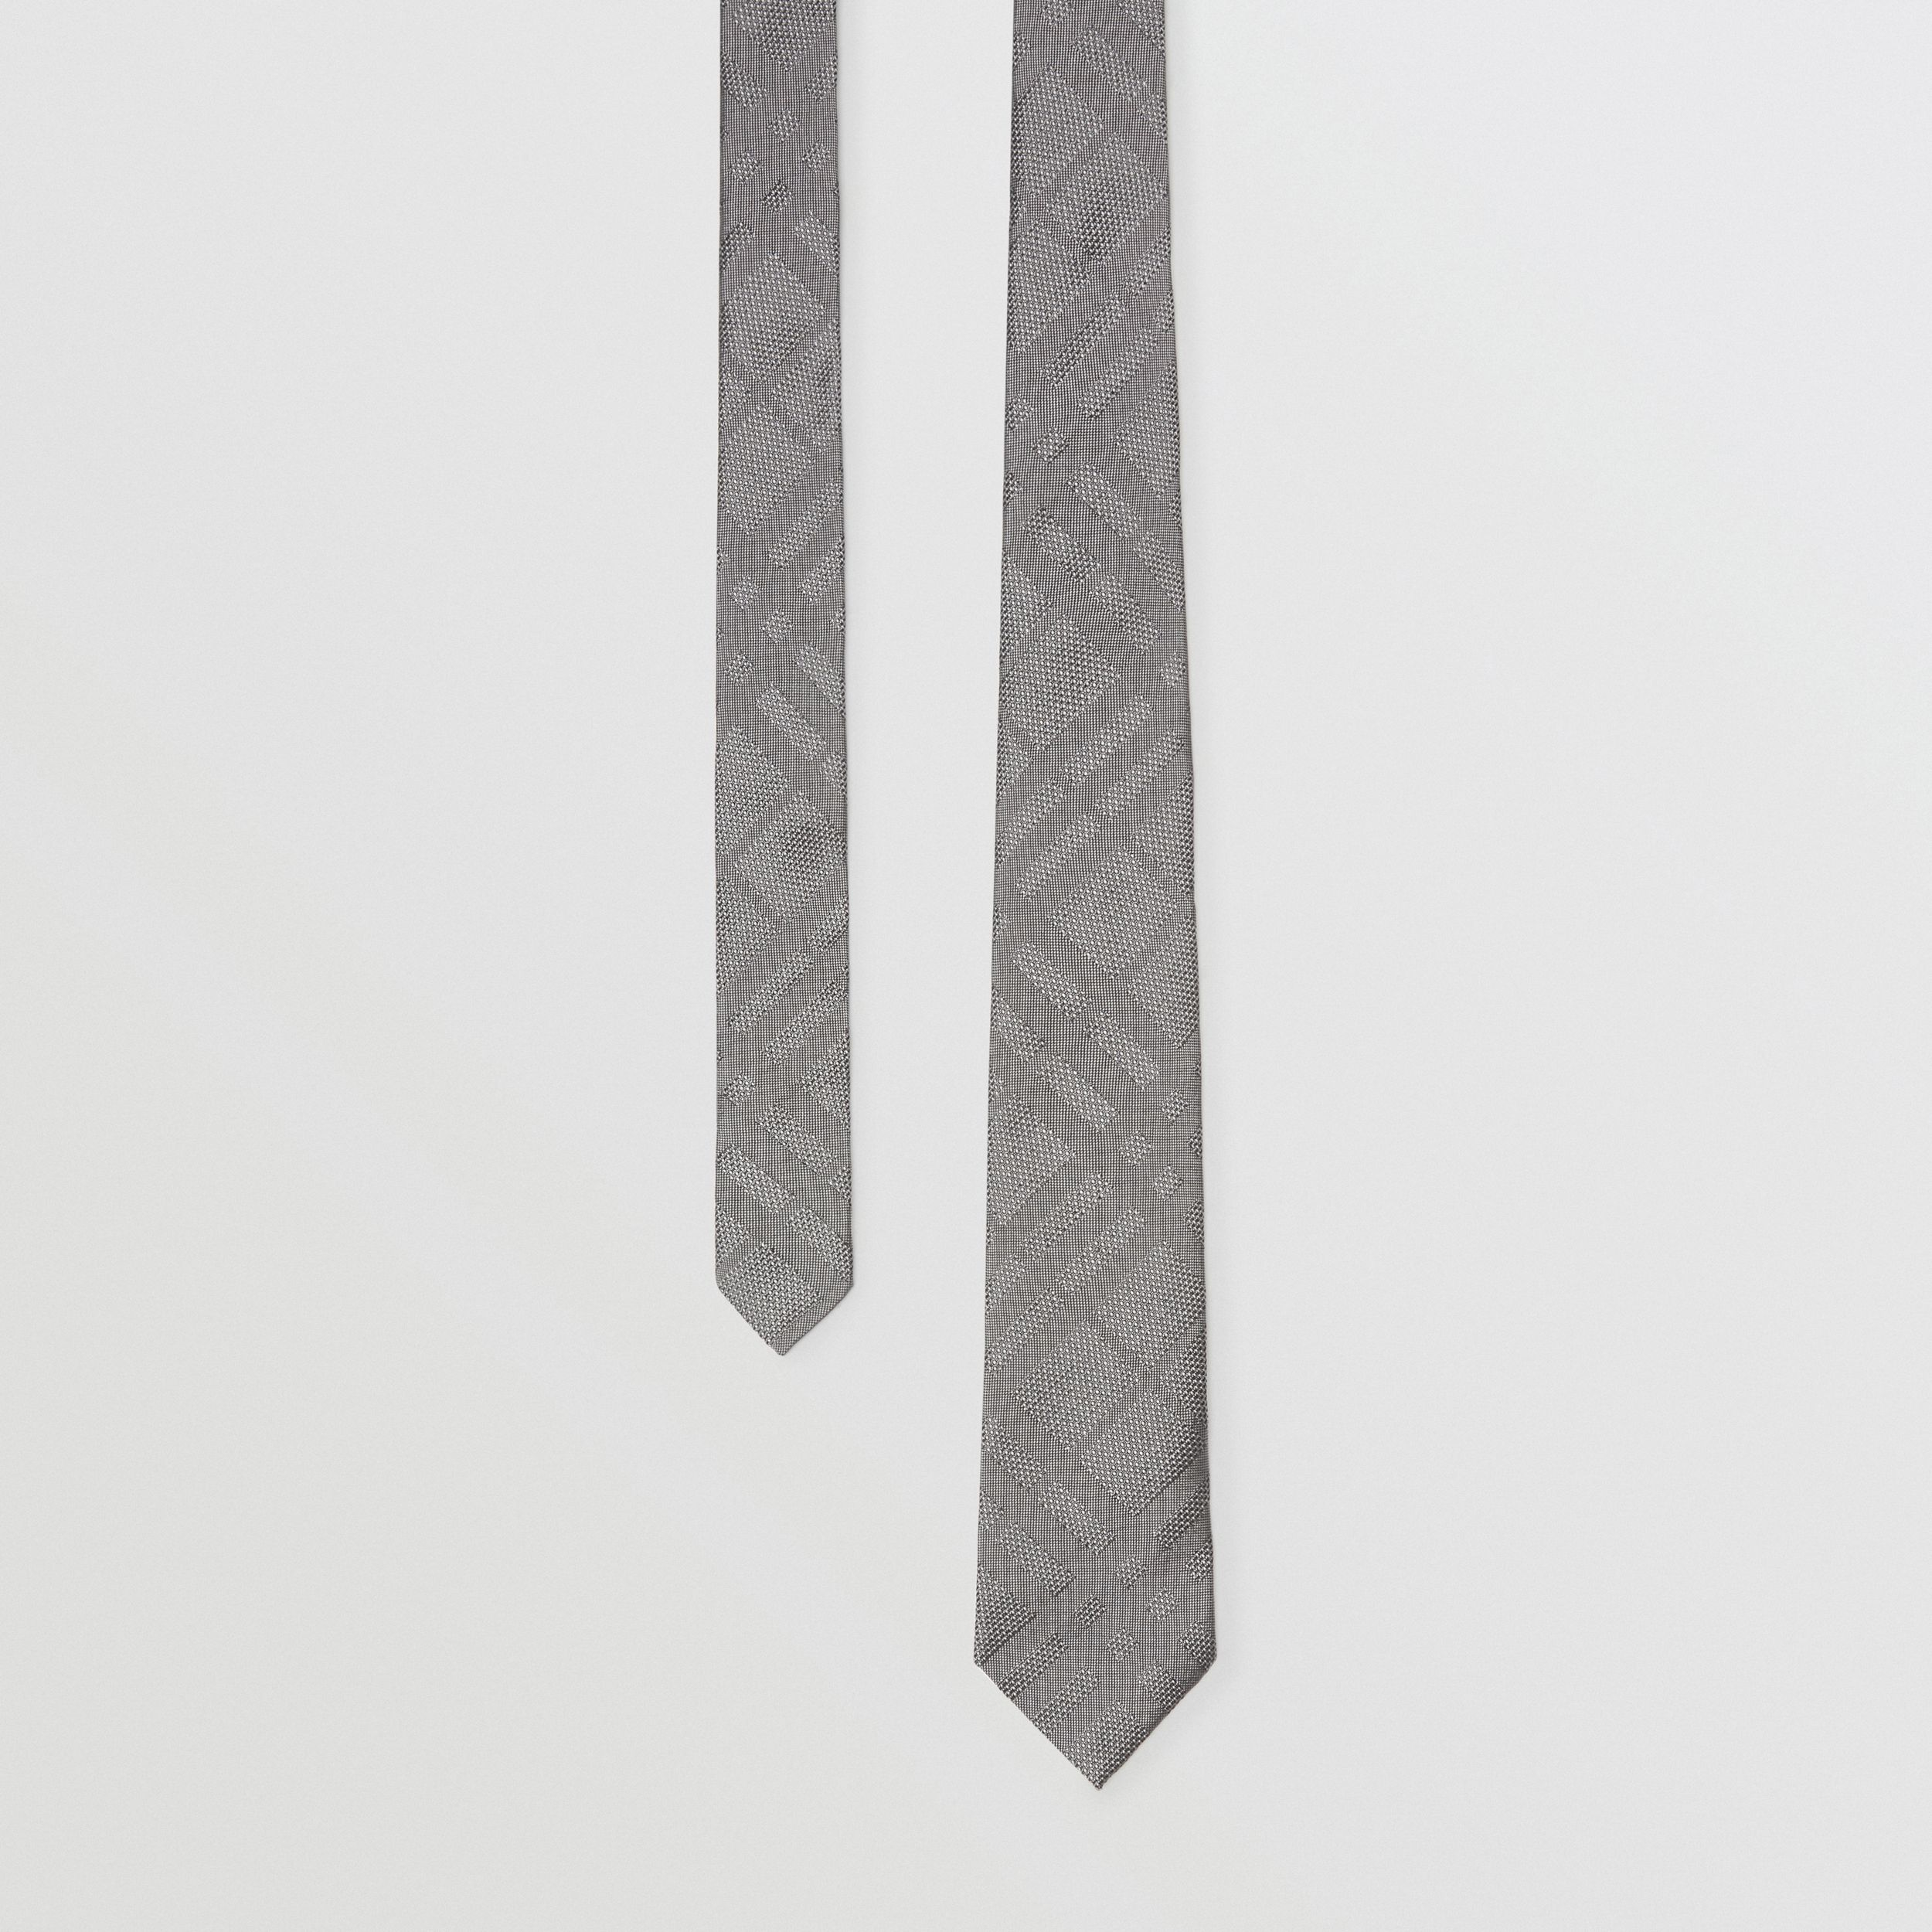 Classic Cut Check Silk Jacquard Tie in Charcoal - Men | Burberry - 1